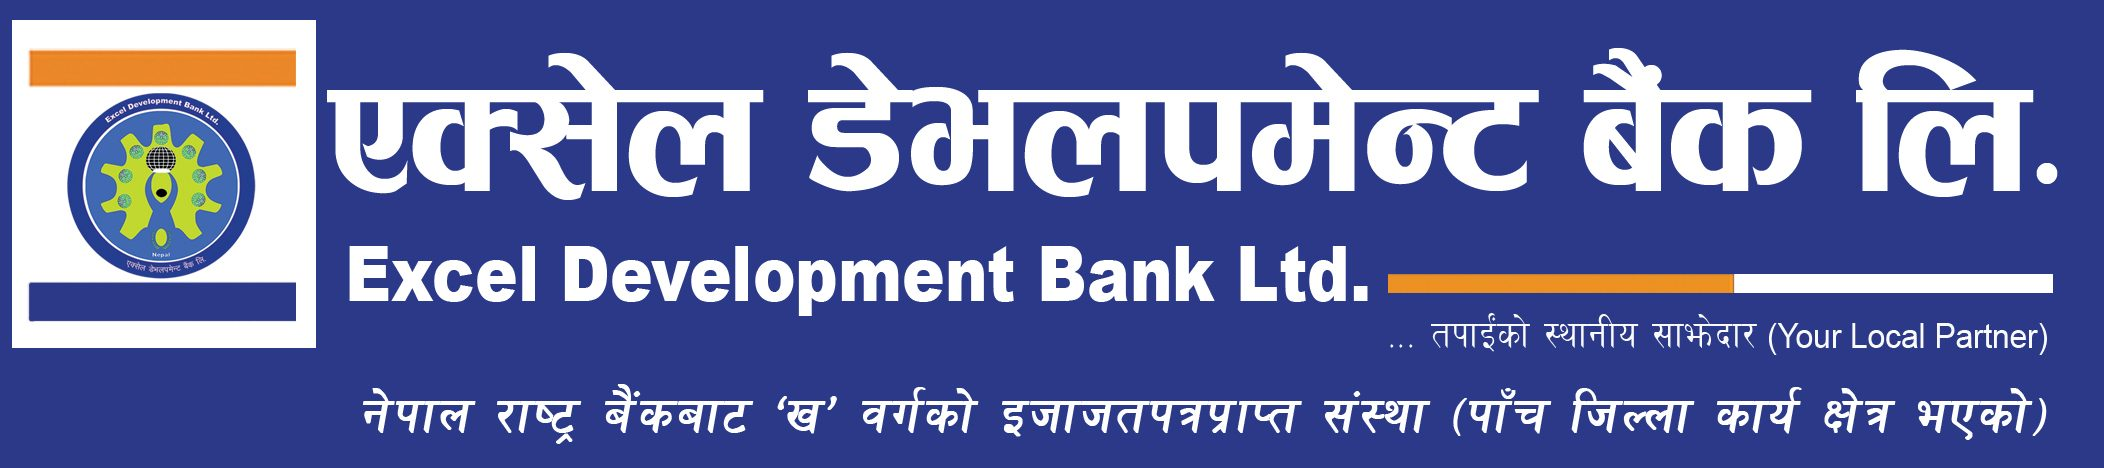 Excel Development Bank Ltd.